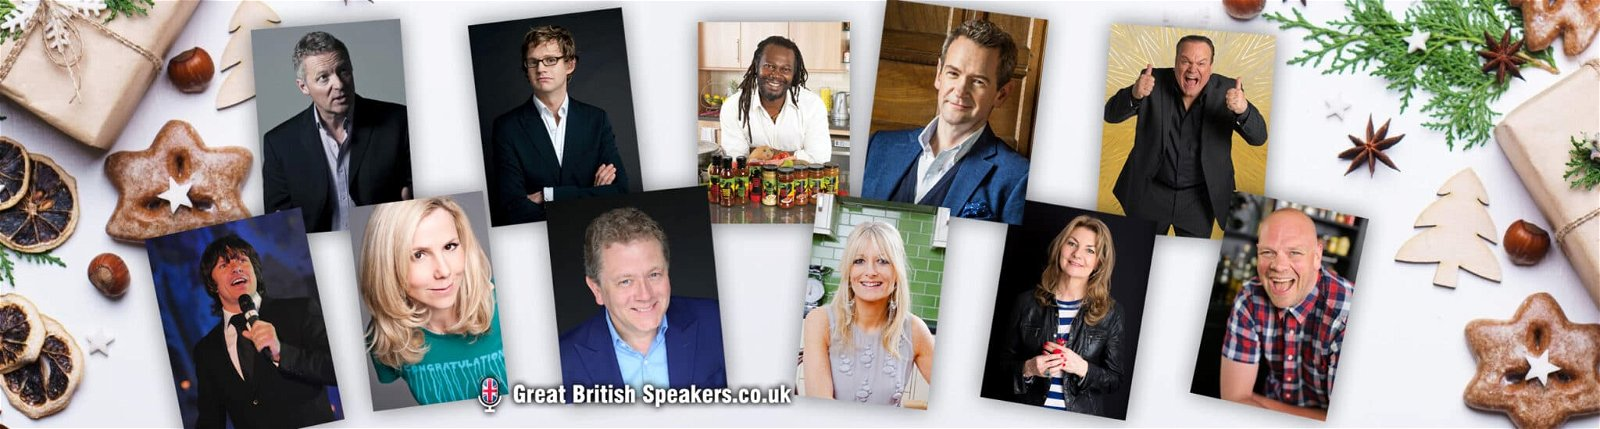 Christmas party virtual entertainment talent at Great British Speakers